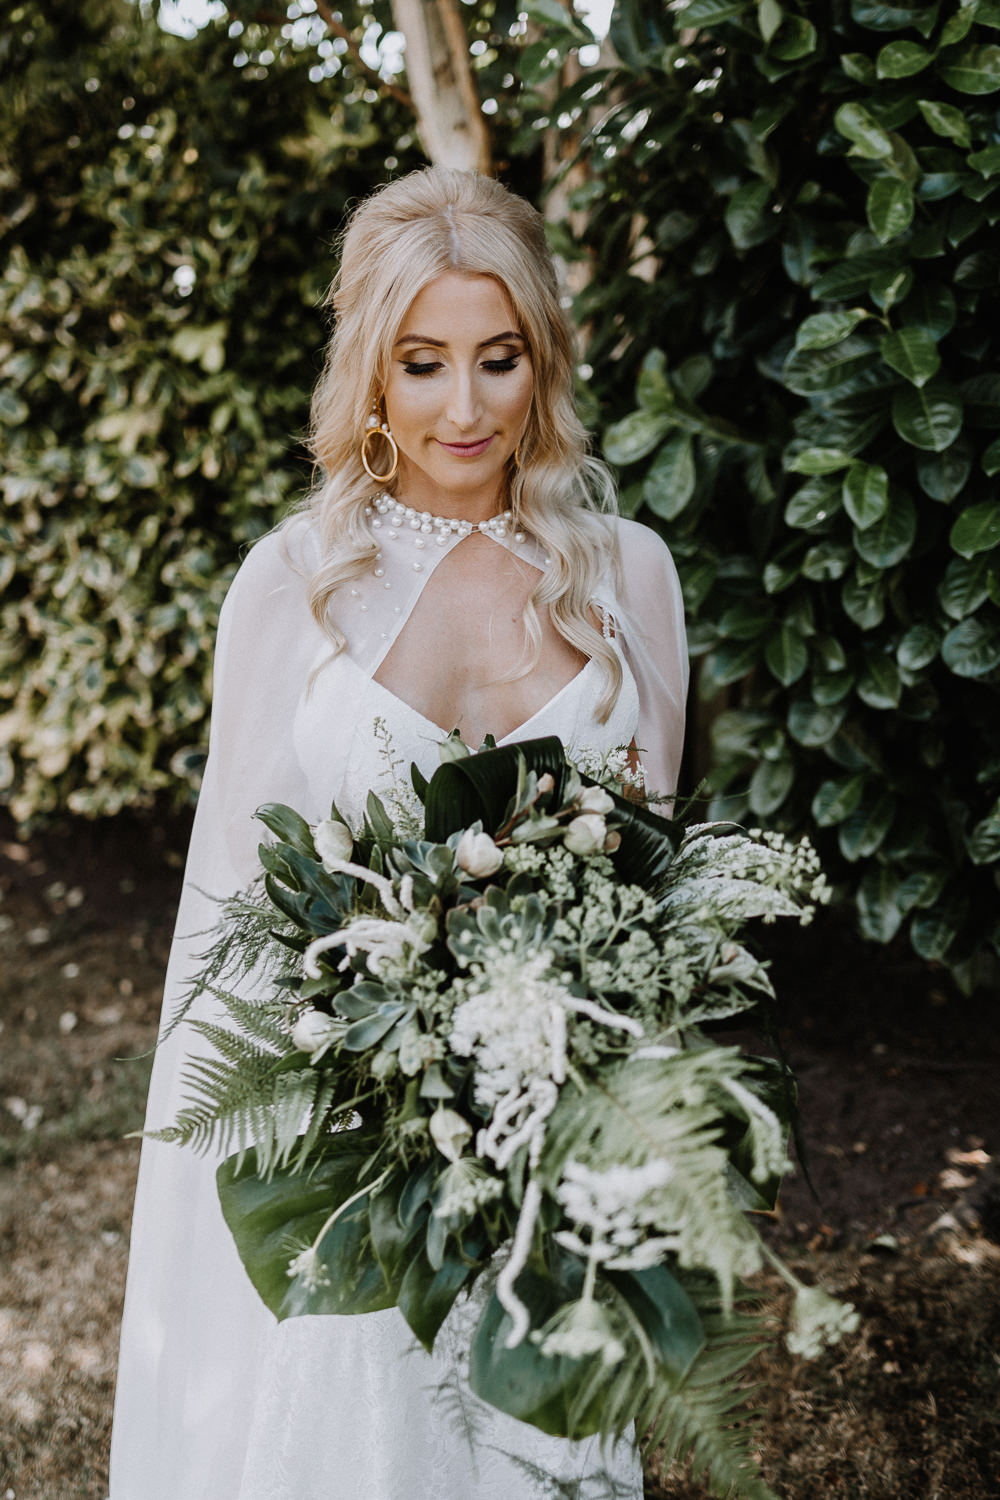 Bouquet Flowers Greenery Foliage Bride Bridal Cape Fern Astilbe Botanical Industrial Wedding Caitlin and Jones Photography